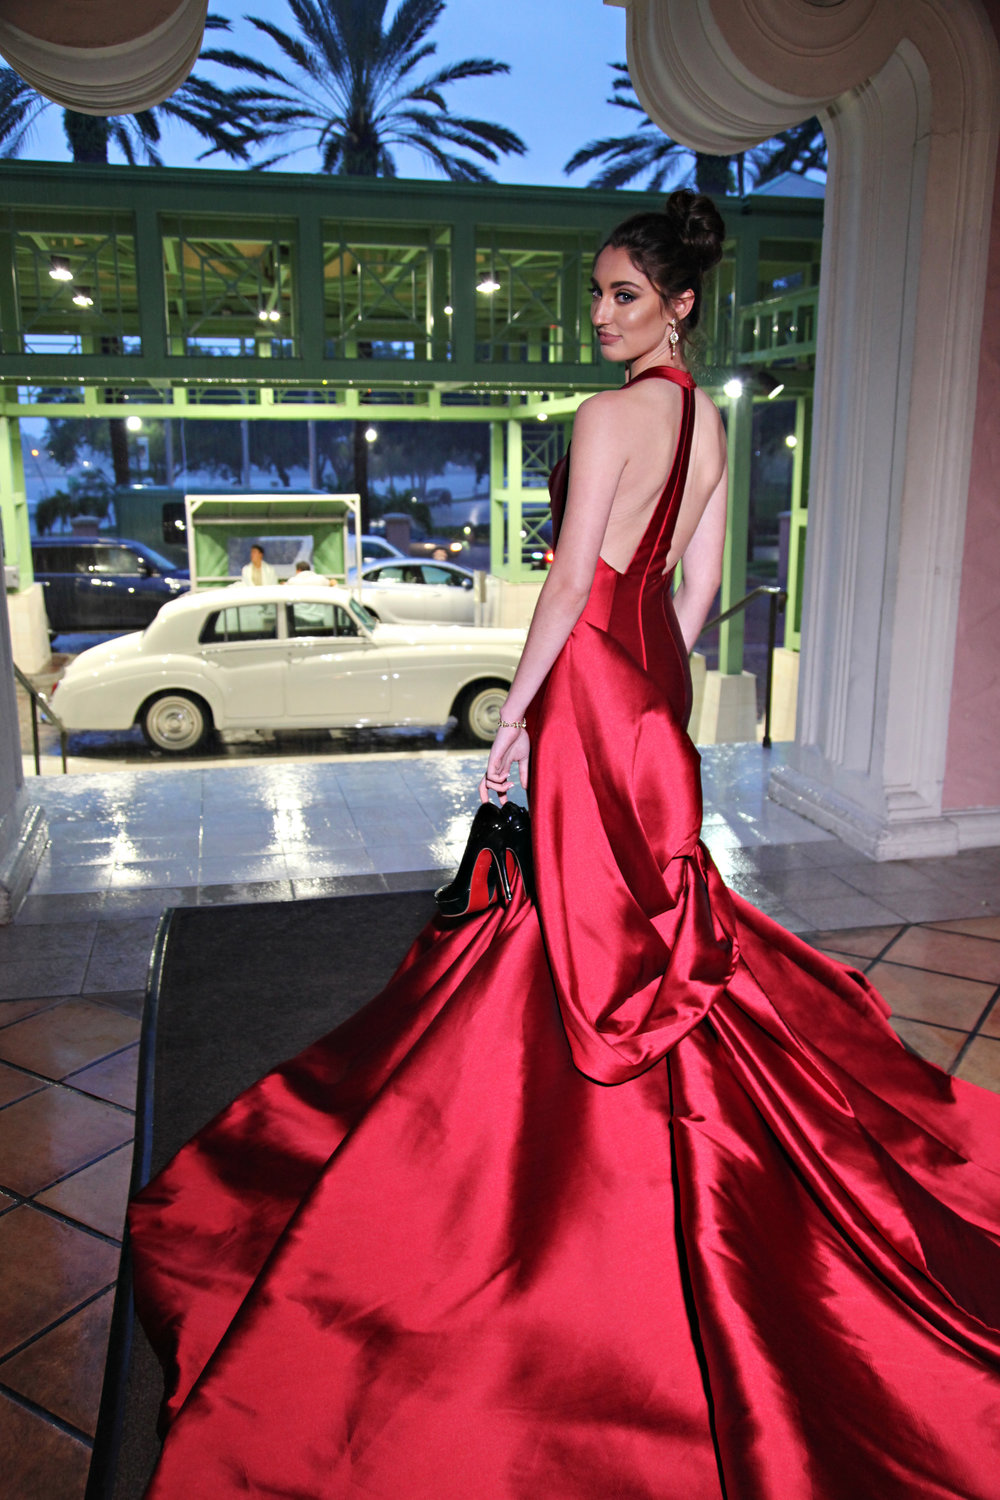 Red Evening Gown Vinoy Wedding.jpg